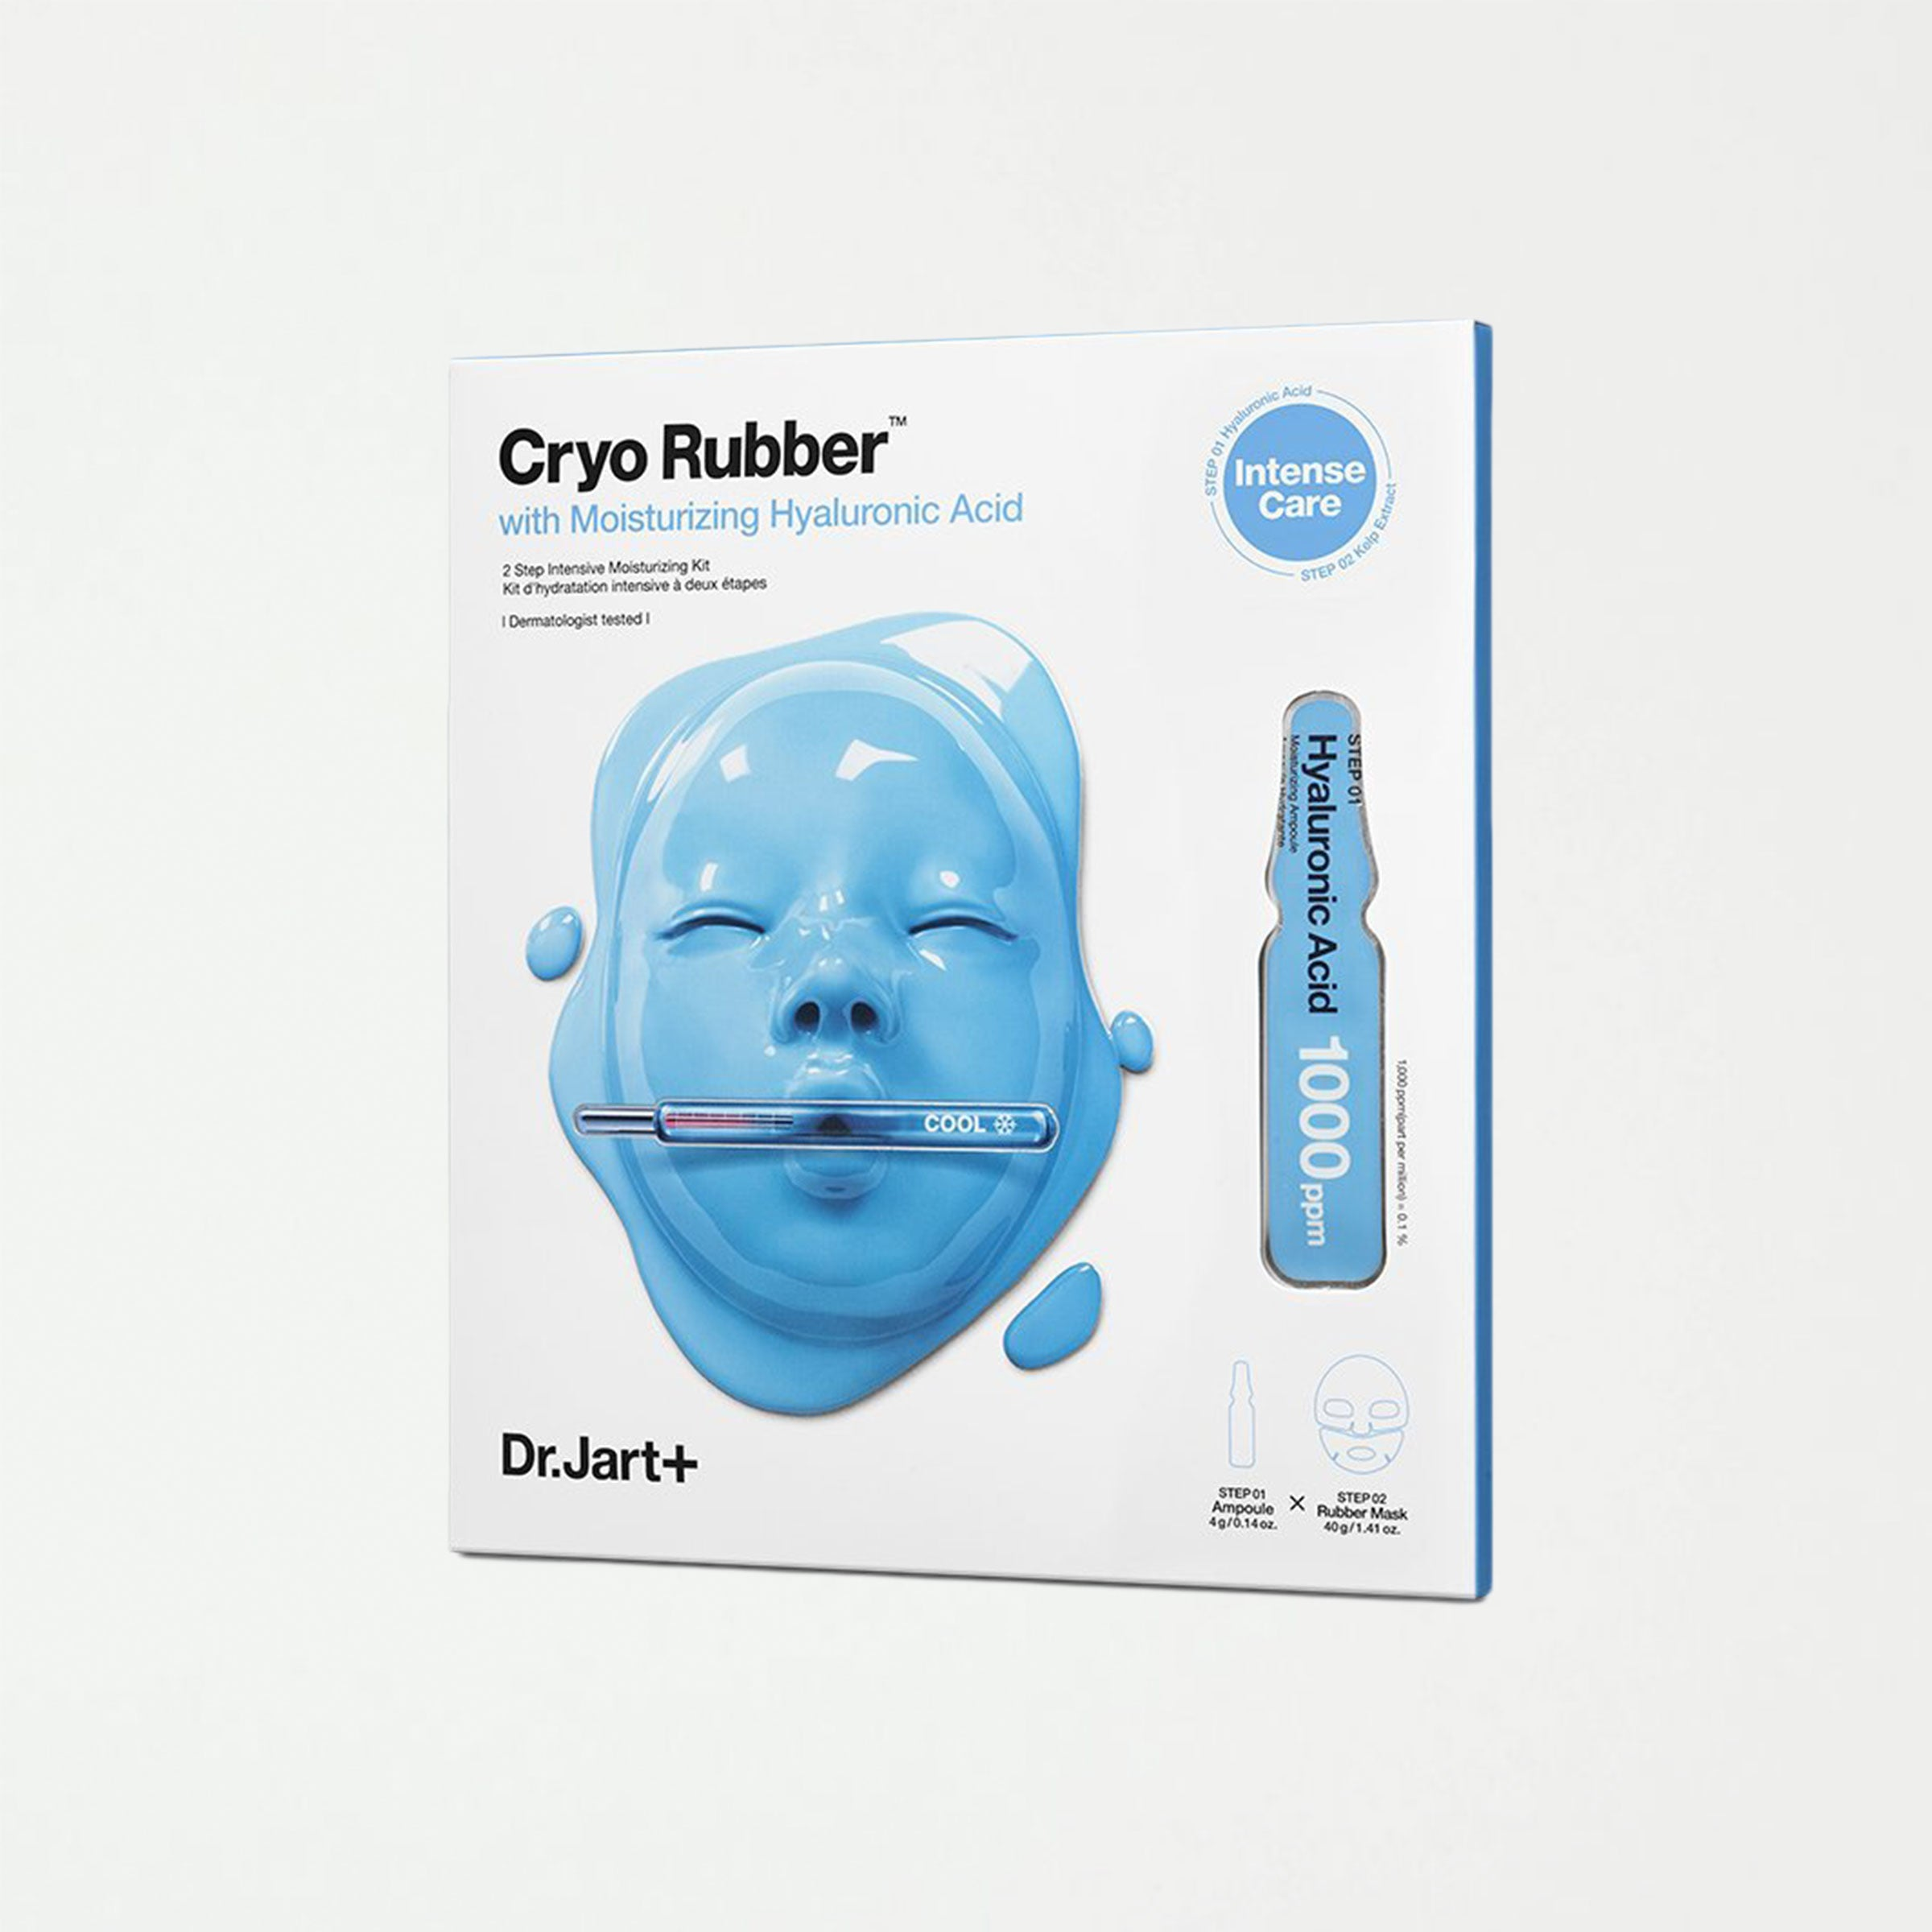 Cryo Rubber™ with Moisturizing Hyaluronic Acid - SHOWFIELDS